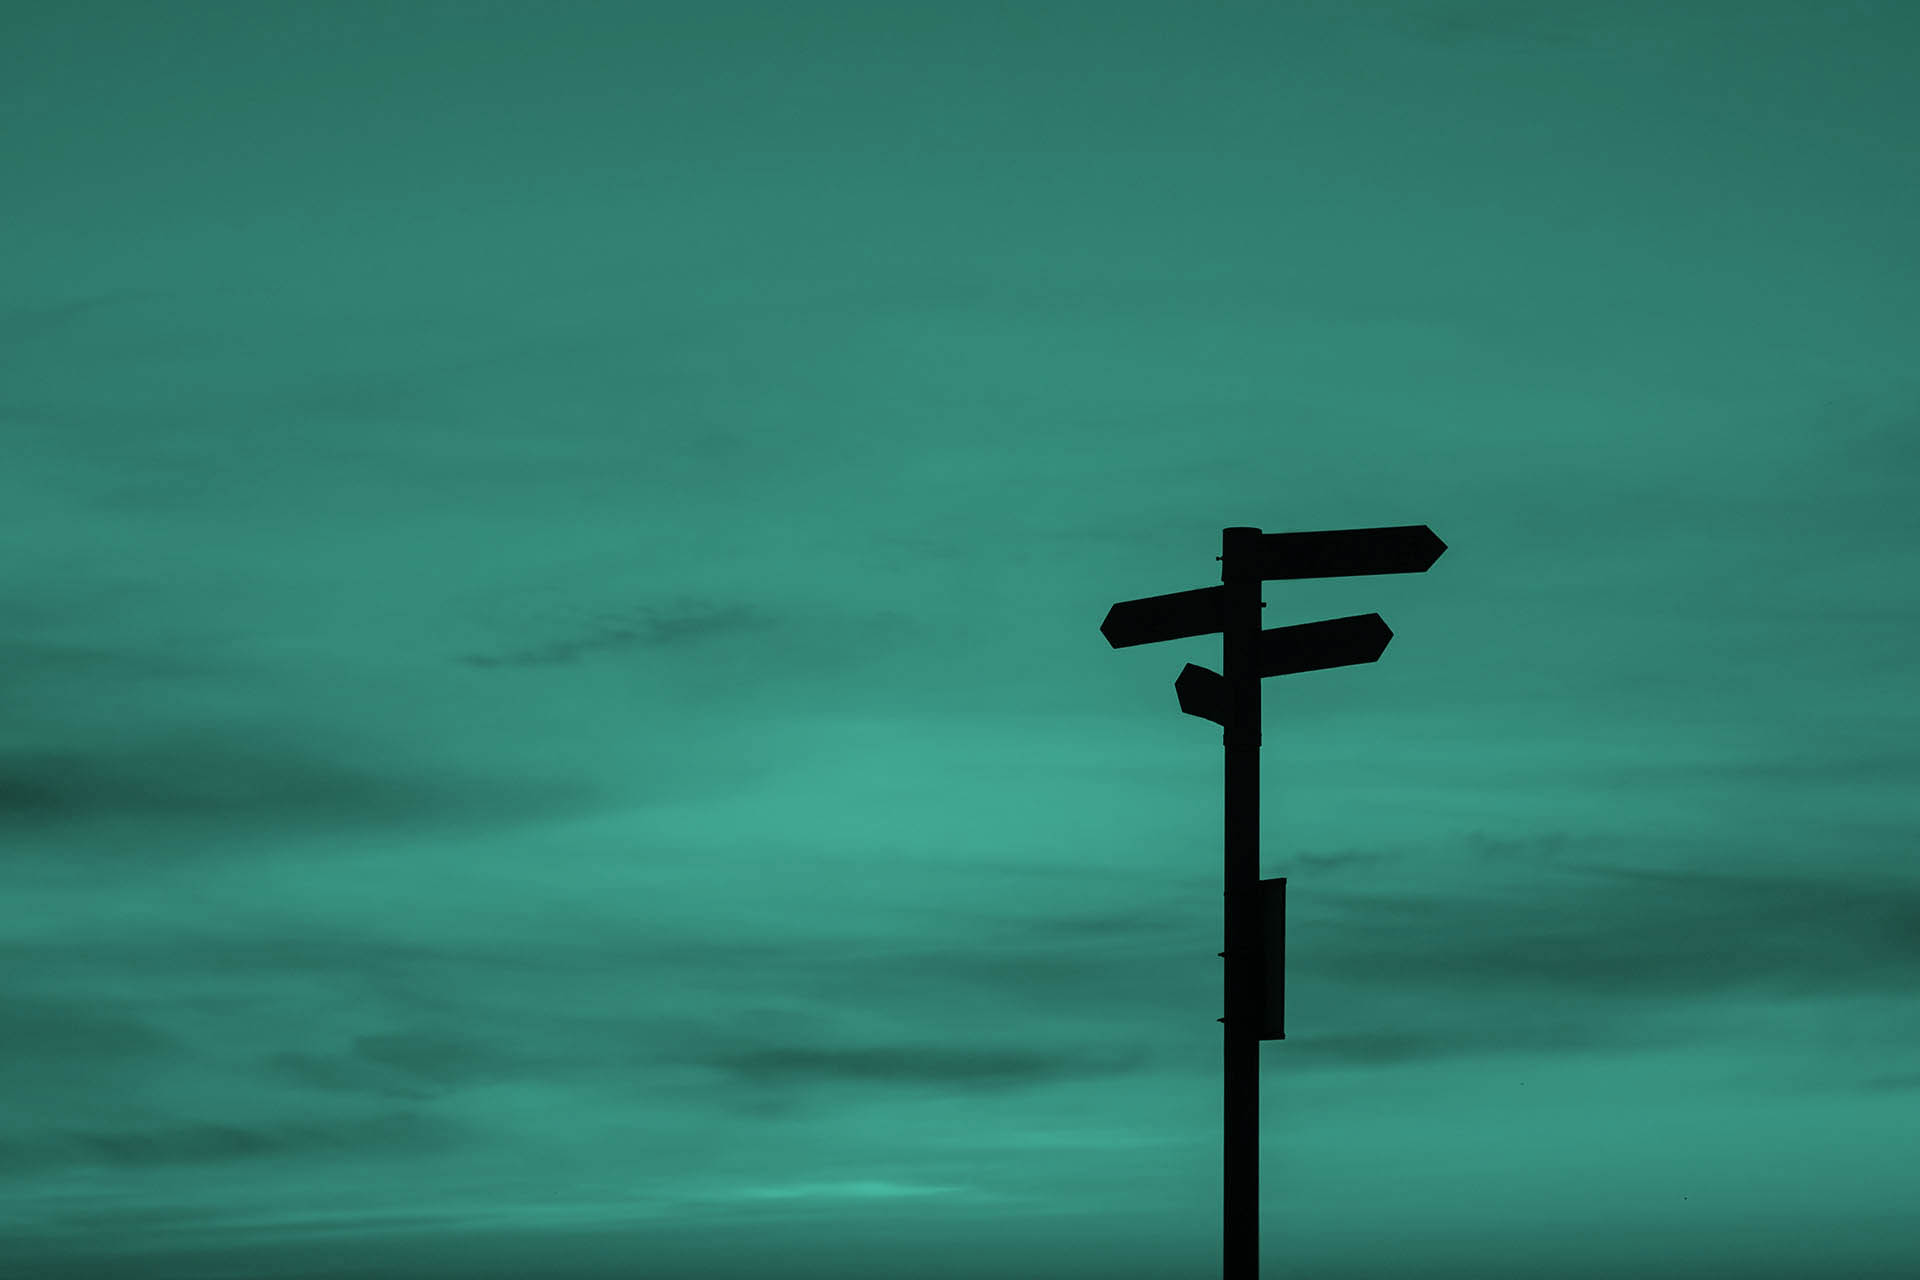 Directional signs, which can only be recognised as black outlines due to the contrast and incidence of light, stand in front of a bluish-red horizon with individual clouds.